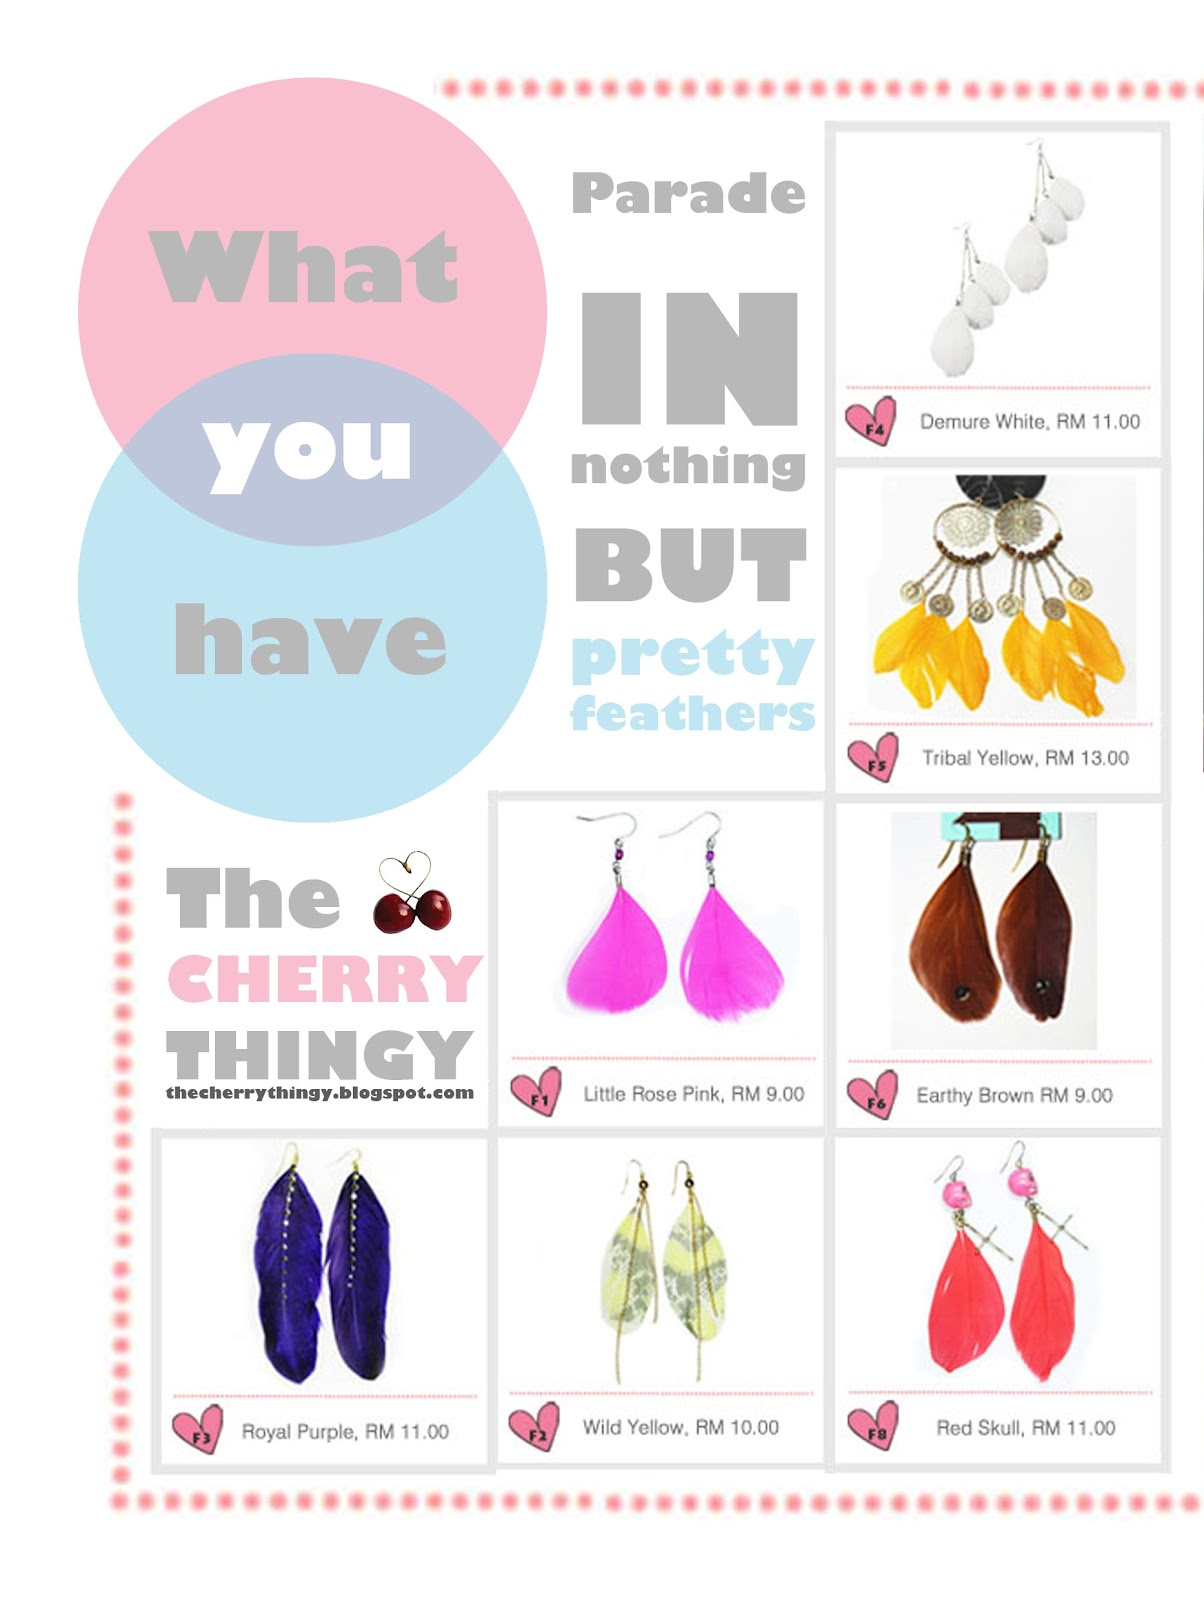 A+Feathery+Dream Magic Monday: Accessorize yourself